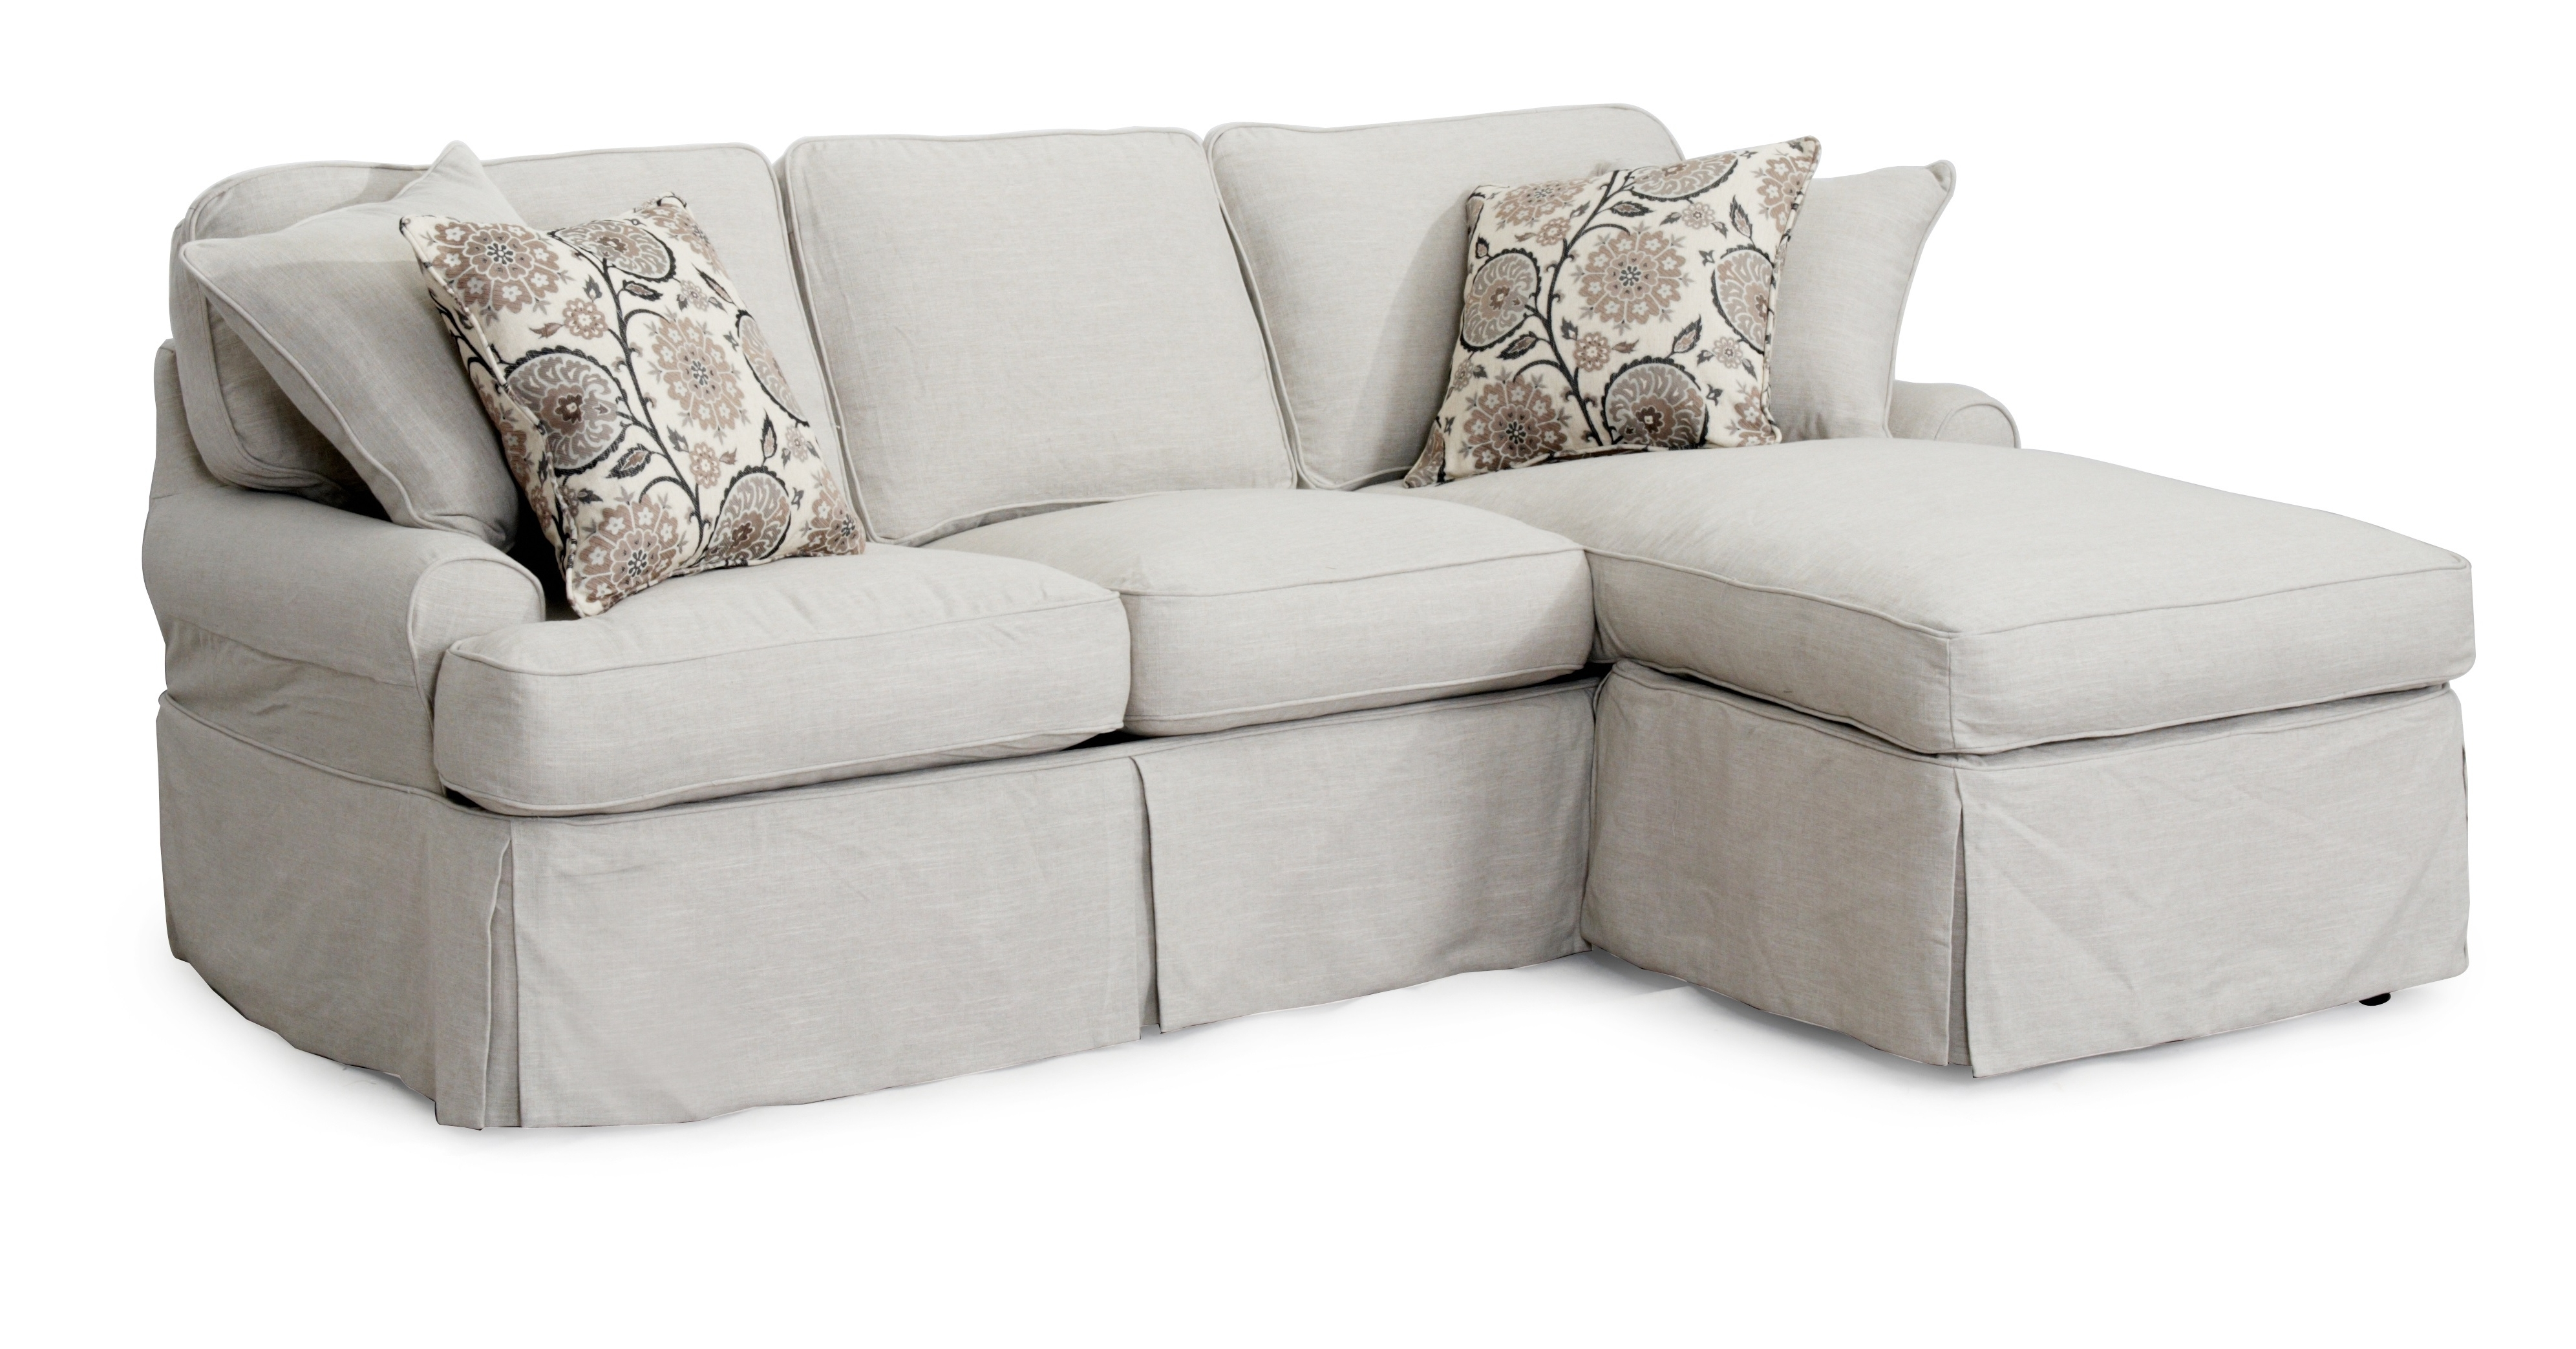 Latest Chaise Sleeper Sofa – Interior Design Throughout Sofa Chaise Sleepers (View 6 of 15)